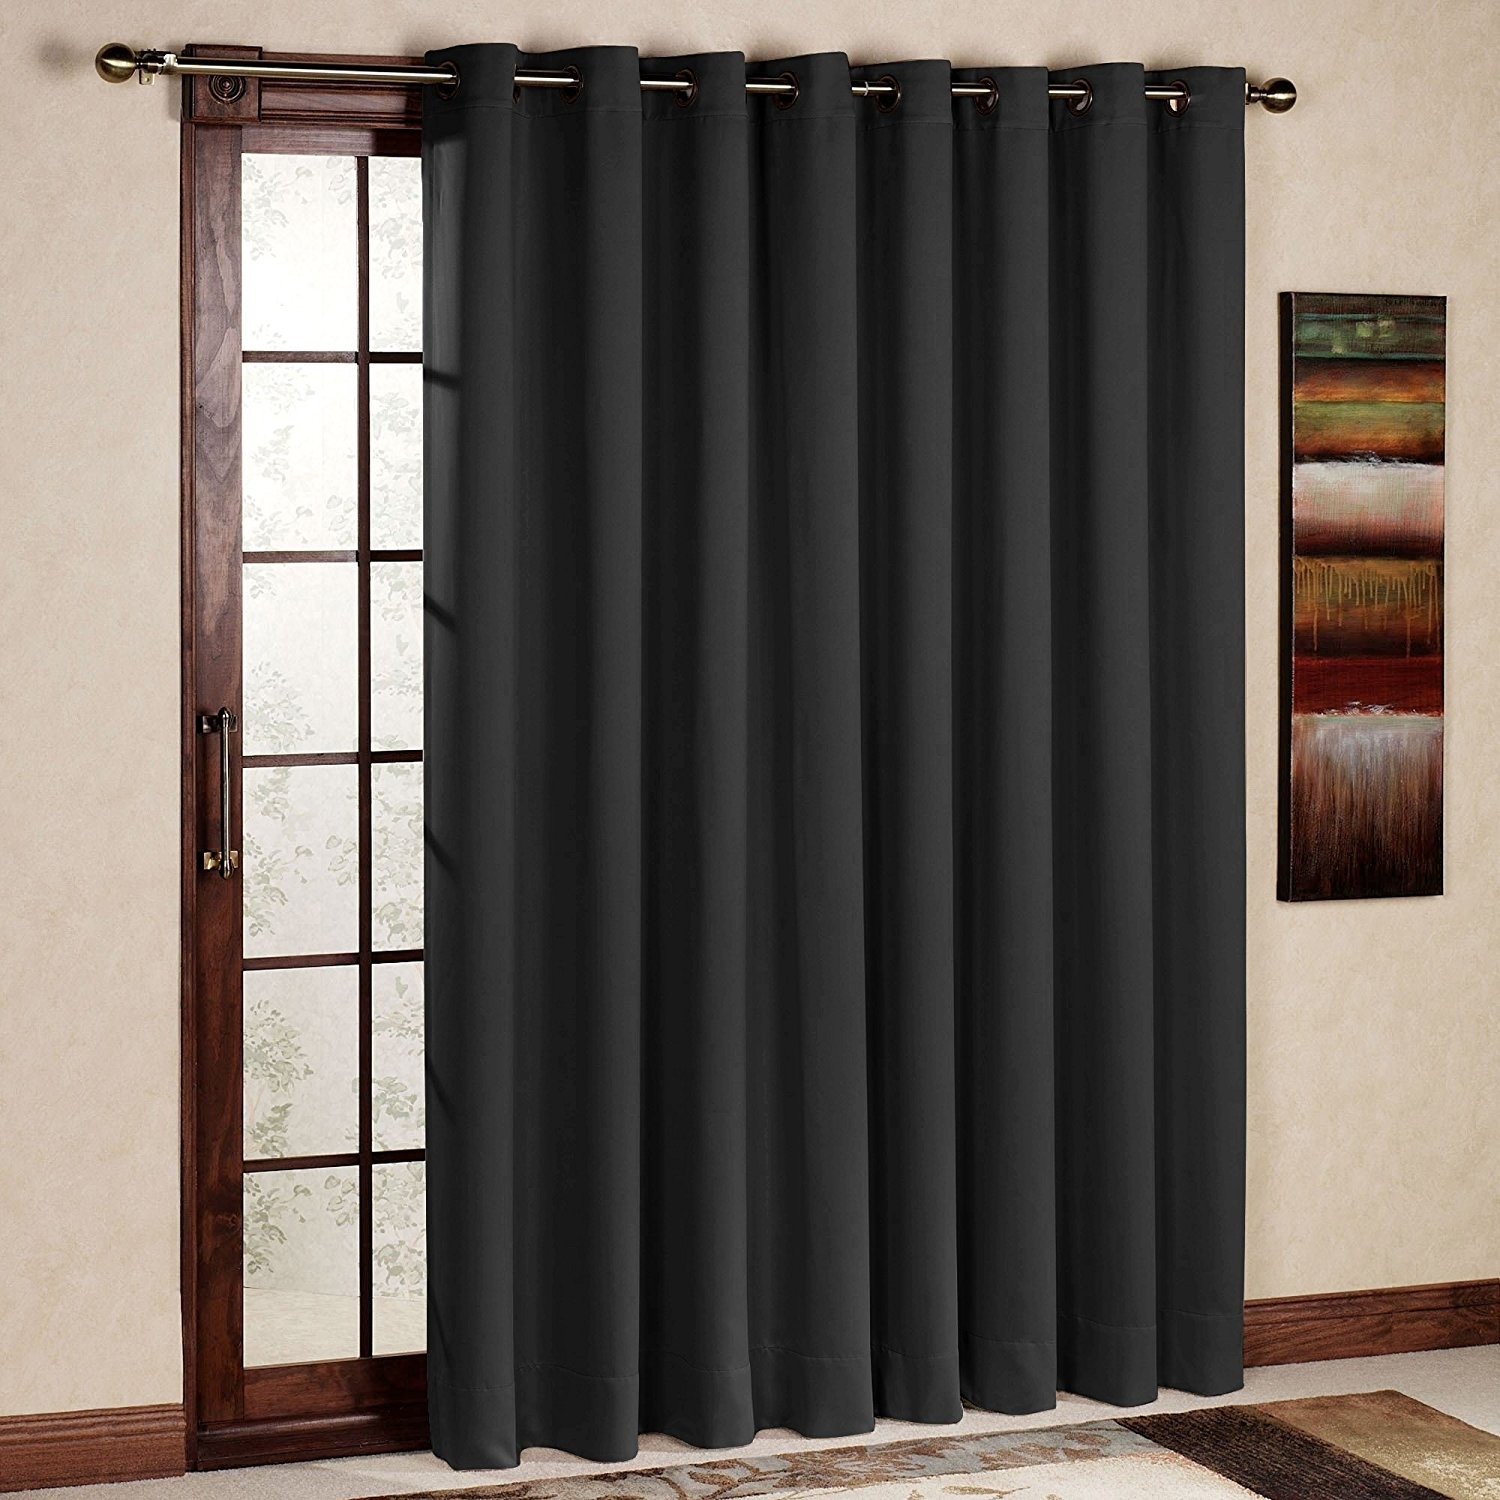 Rhf Thermal Insulated Blackout Patio Door Curtain Panel Sliding Regarding Thermal Door Curtain (View 14 of 15)